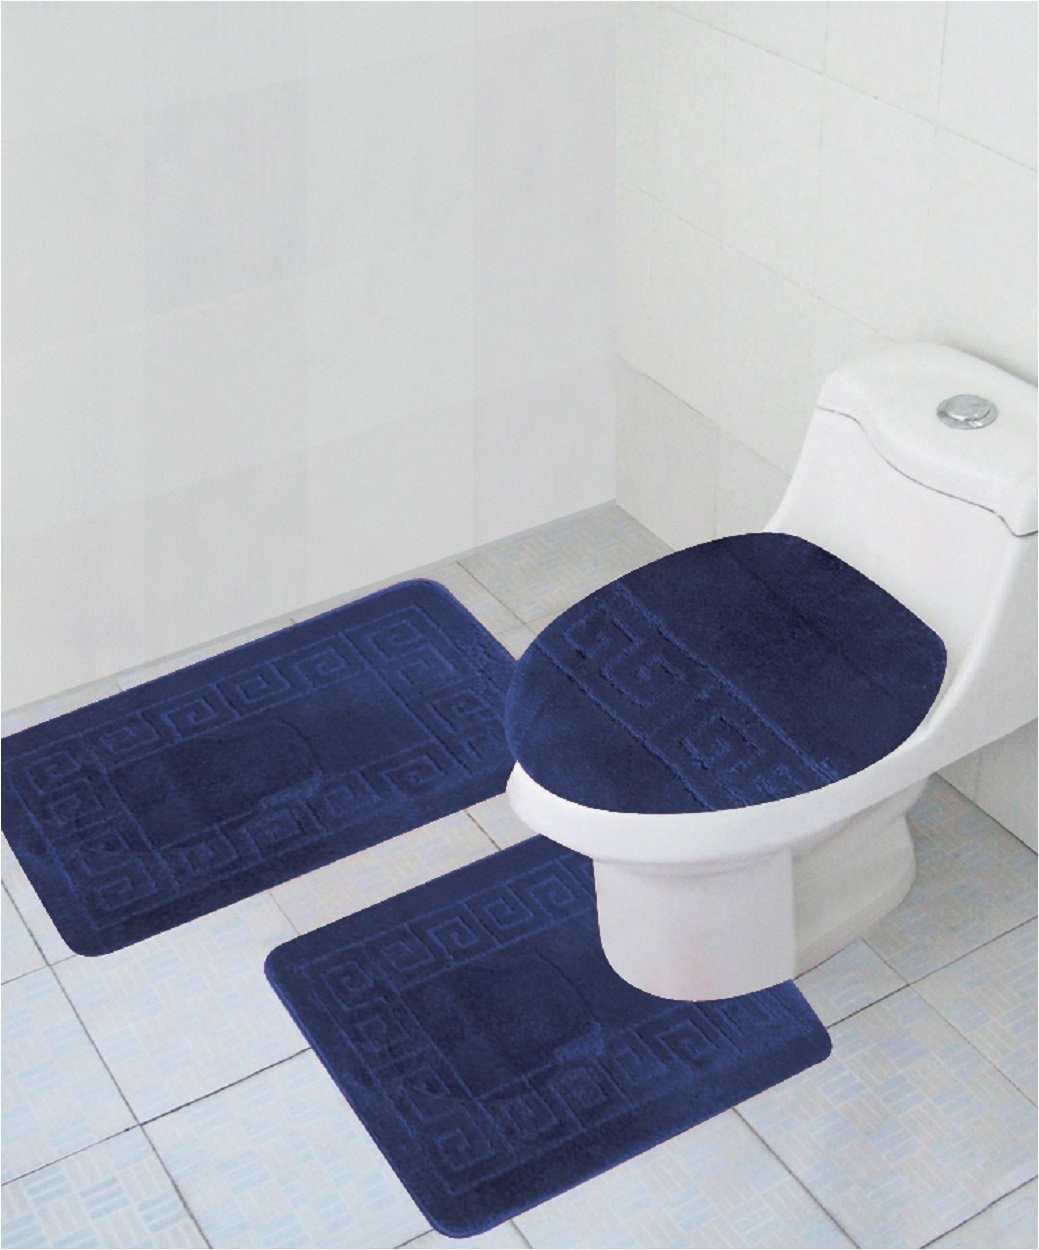 three piece navy bath rug odd shaped rugs microfiber bath mats bath rugs walmart 24 x 60 bath rug sears bath rugs blue rugs tar jcpenney rugs clearance kohls bath rugs bathroom rug sets bed bath an